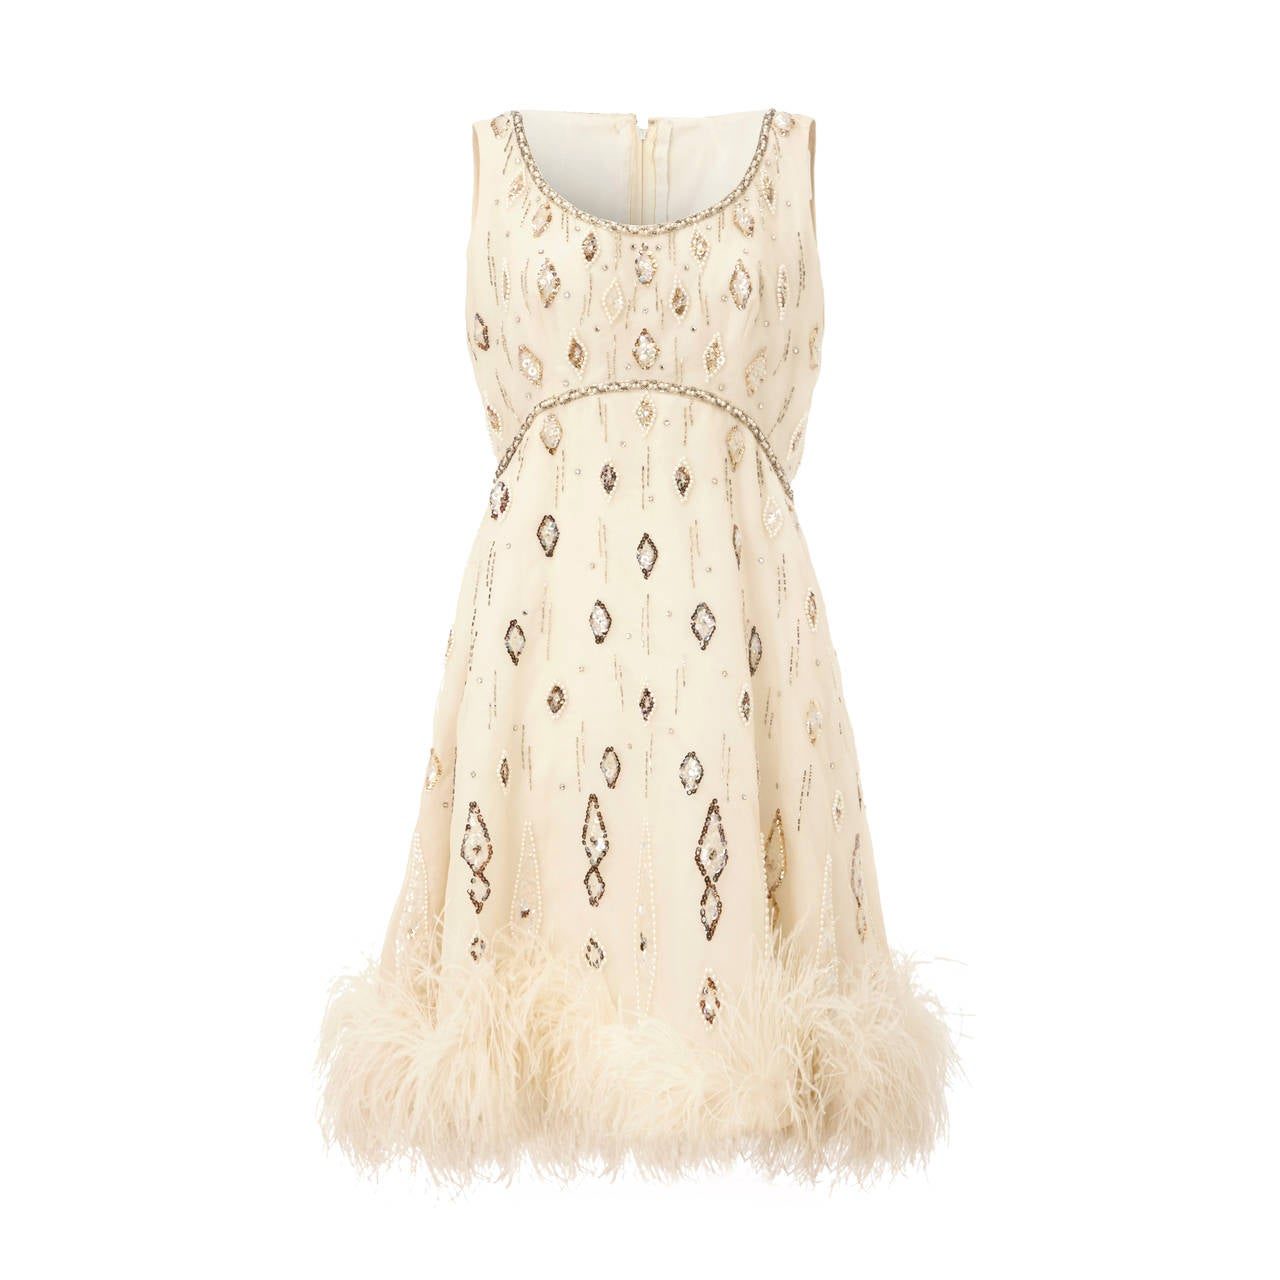 1960s White Beaded Dress With Feather Trim